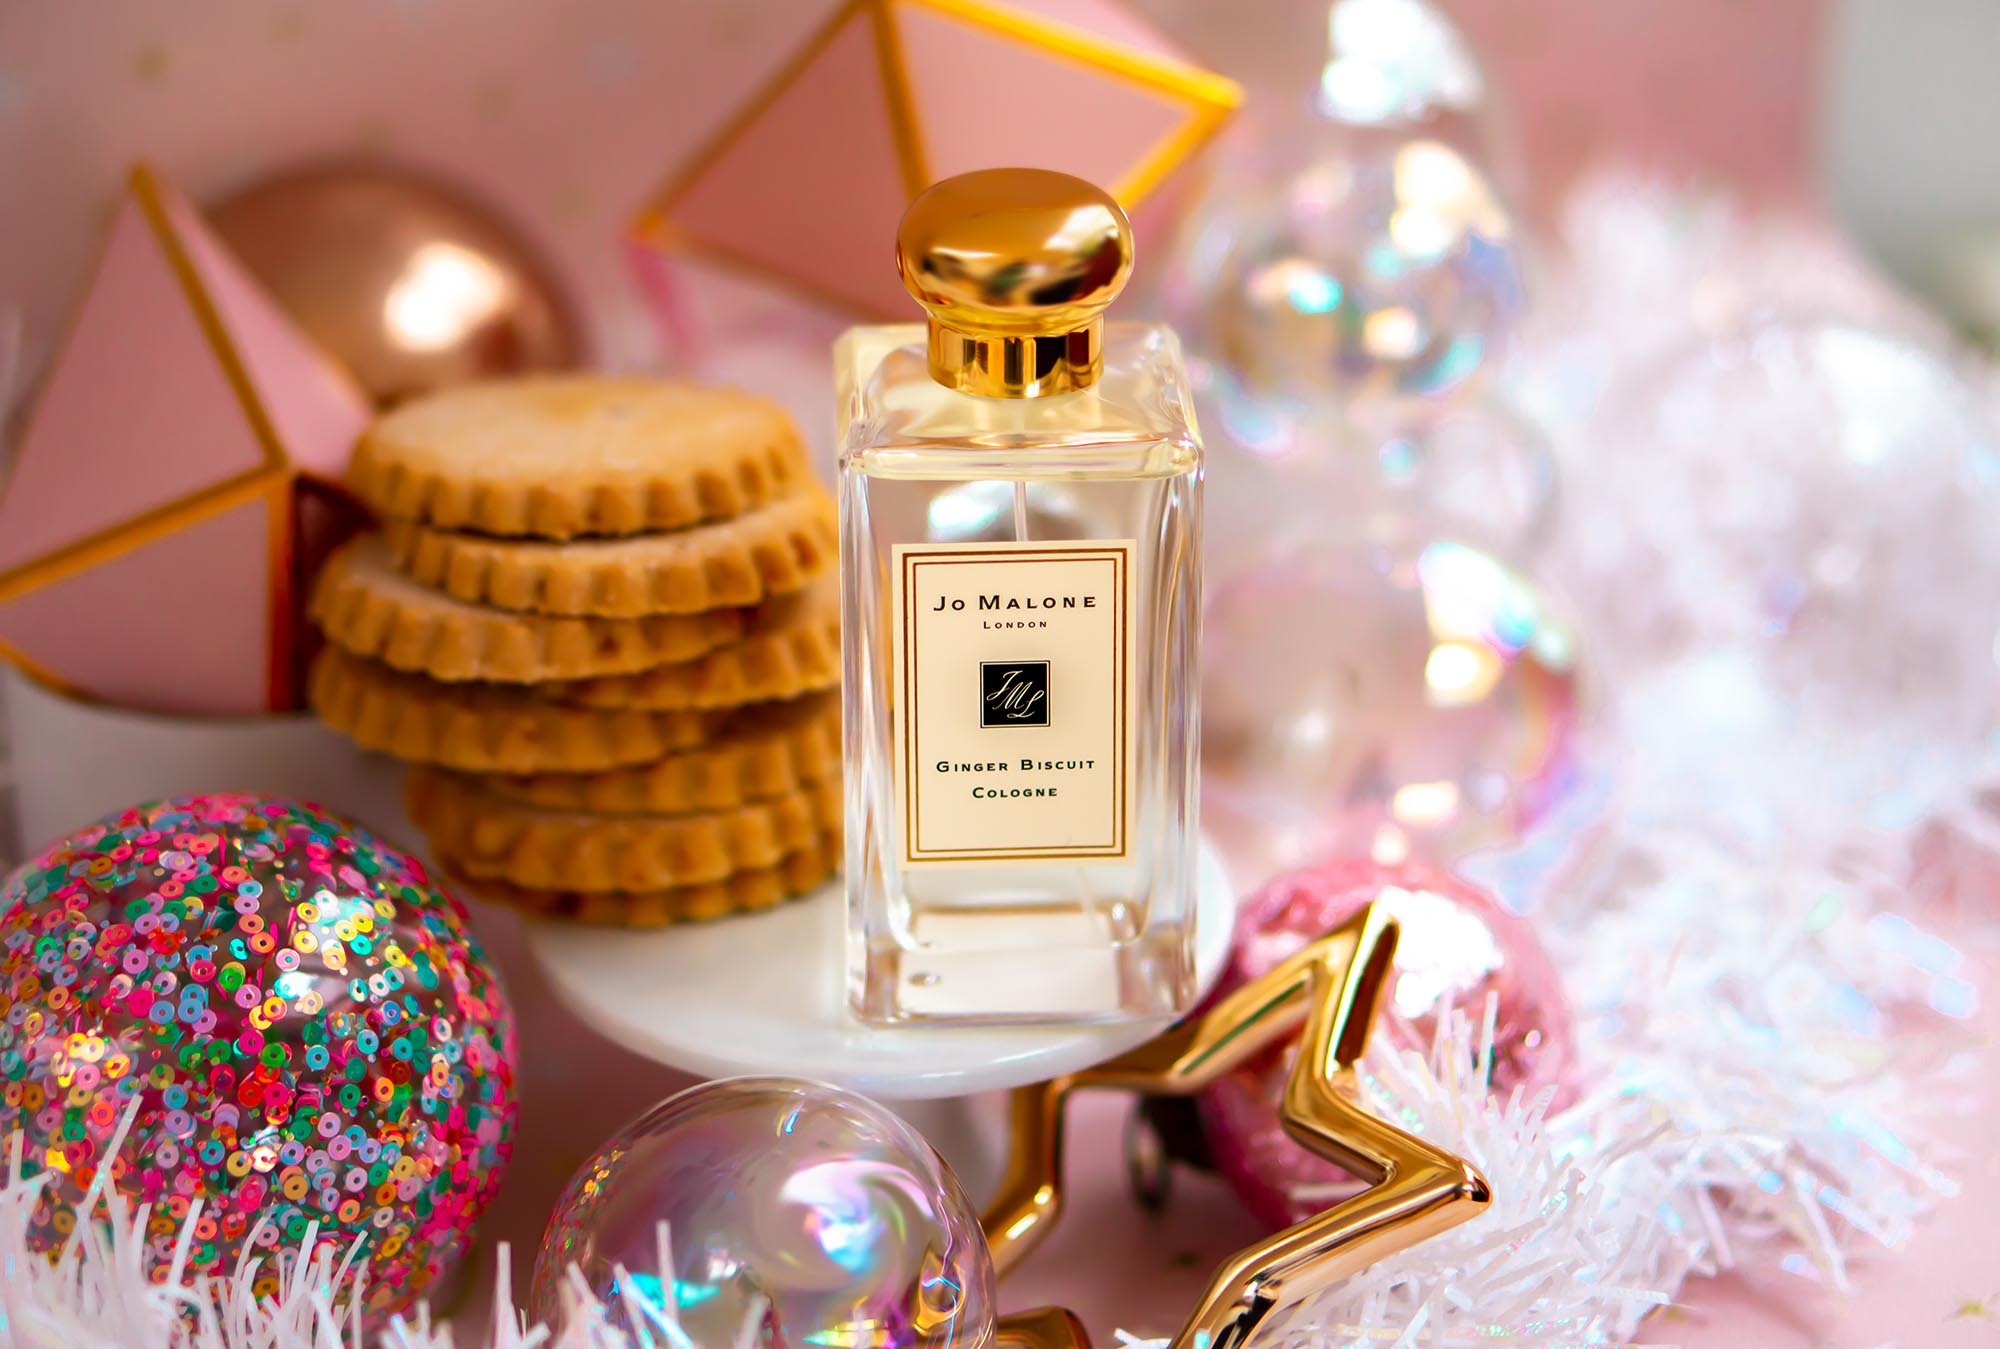 Jo Malone London Ginger Biscuit Cologne Parfüm Perfume Fragrance Duft парфюм